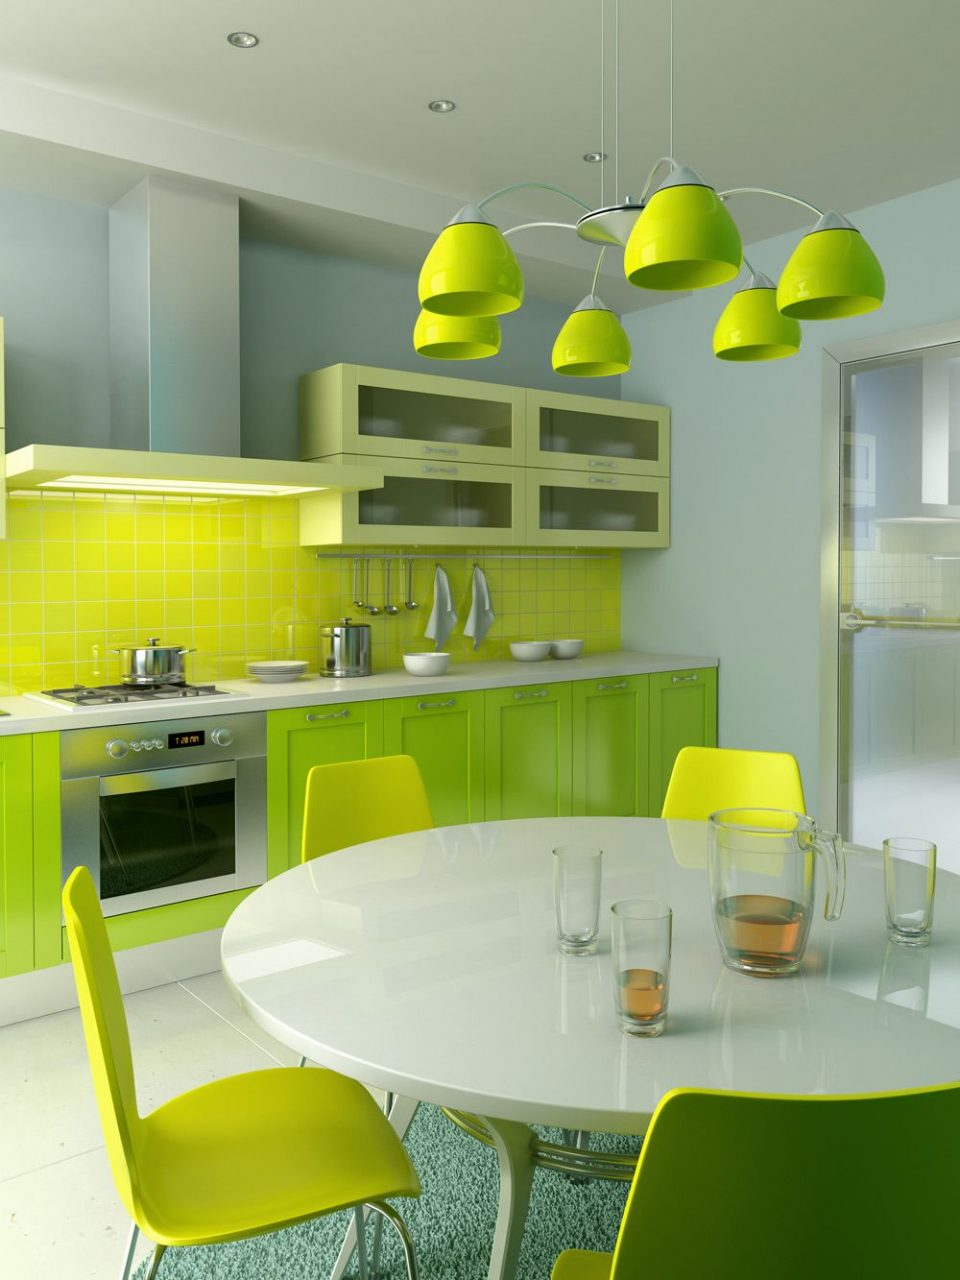 Green Kitchens For The Home Green Kitchen Inspiration Green